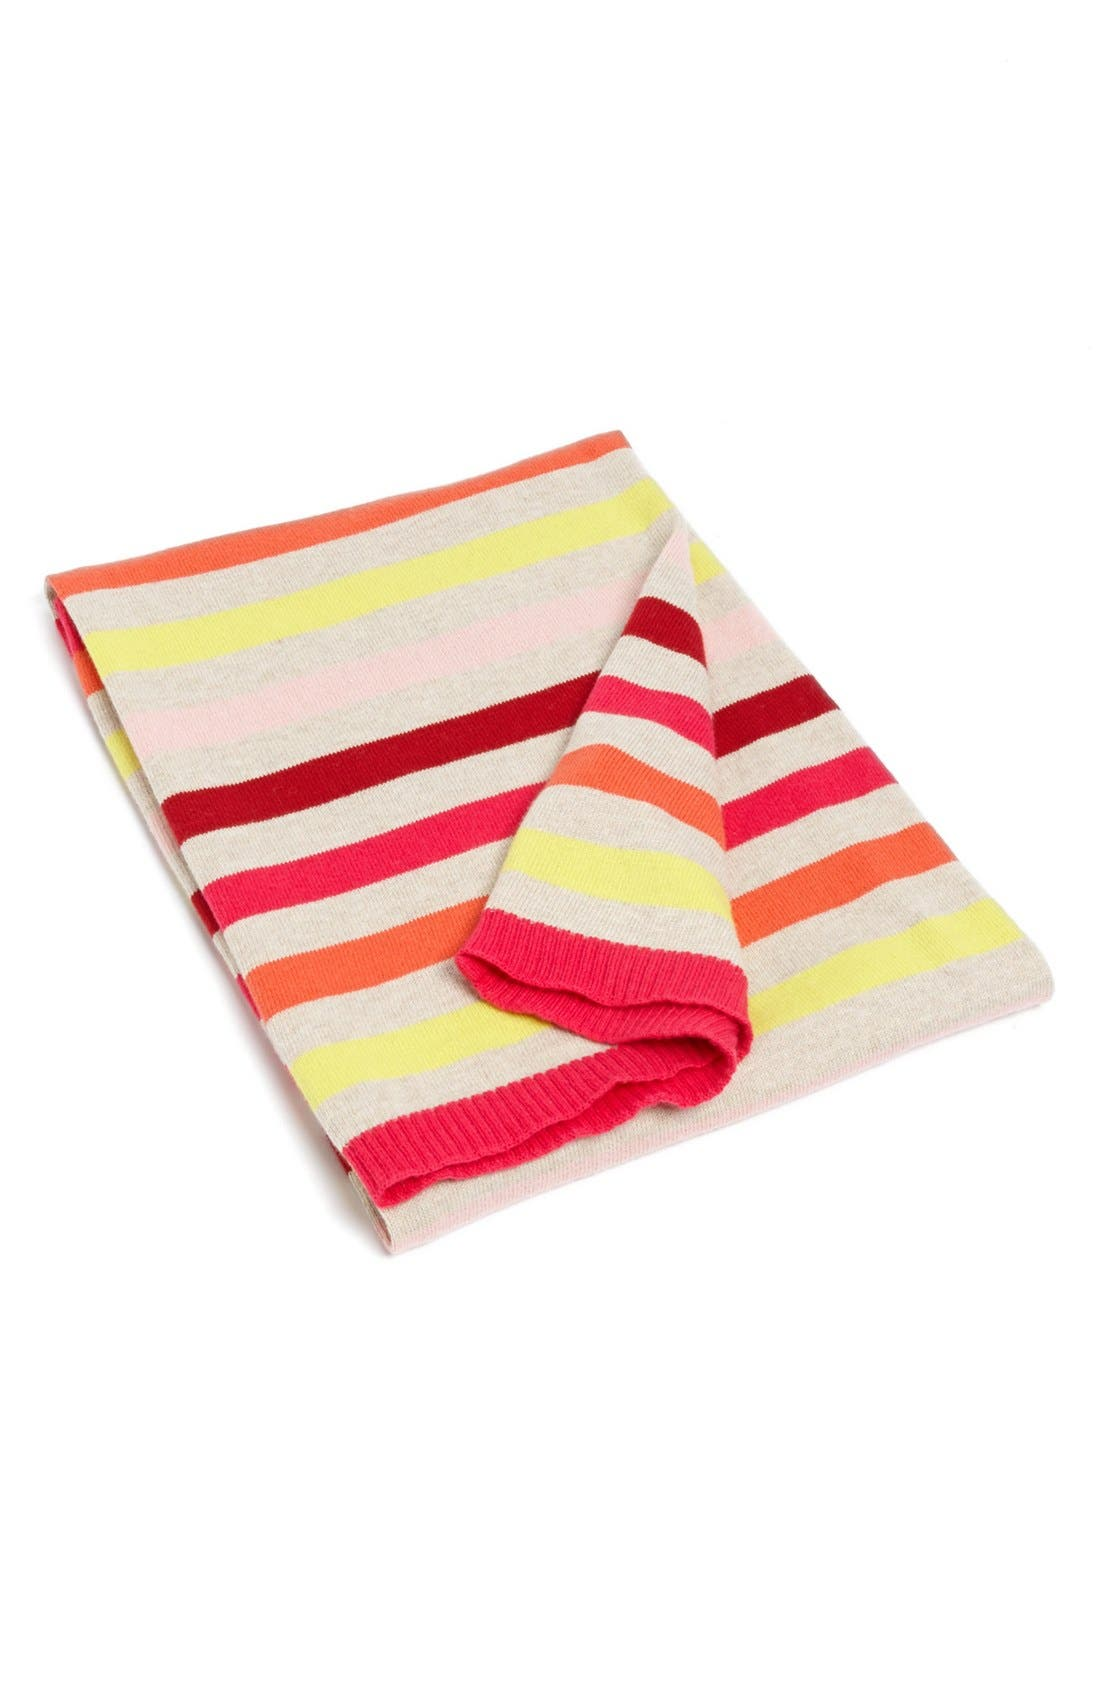 Alternate Image 1 Selected - Tucker + Tate Striped Cotton & Cashmere Blanket